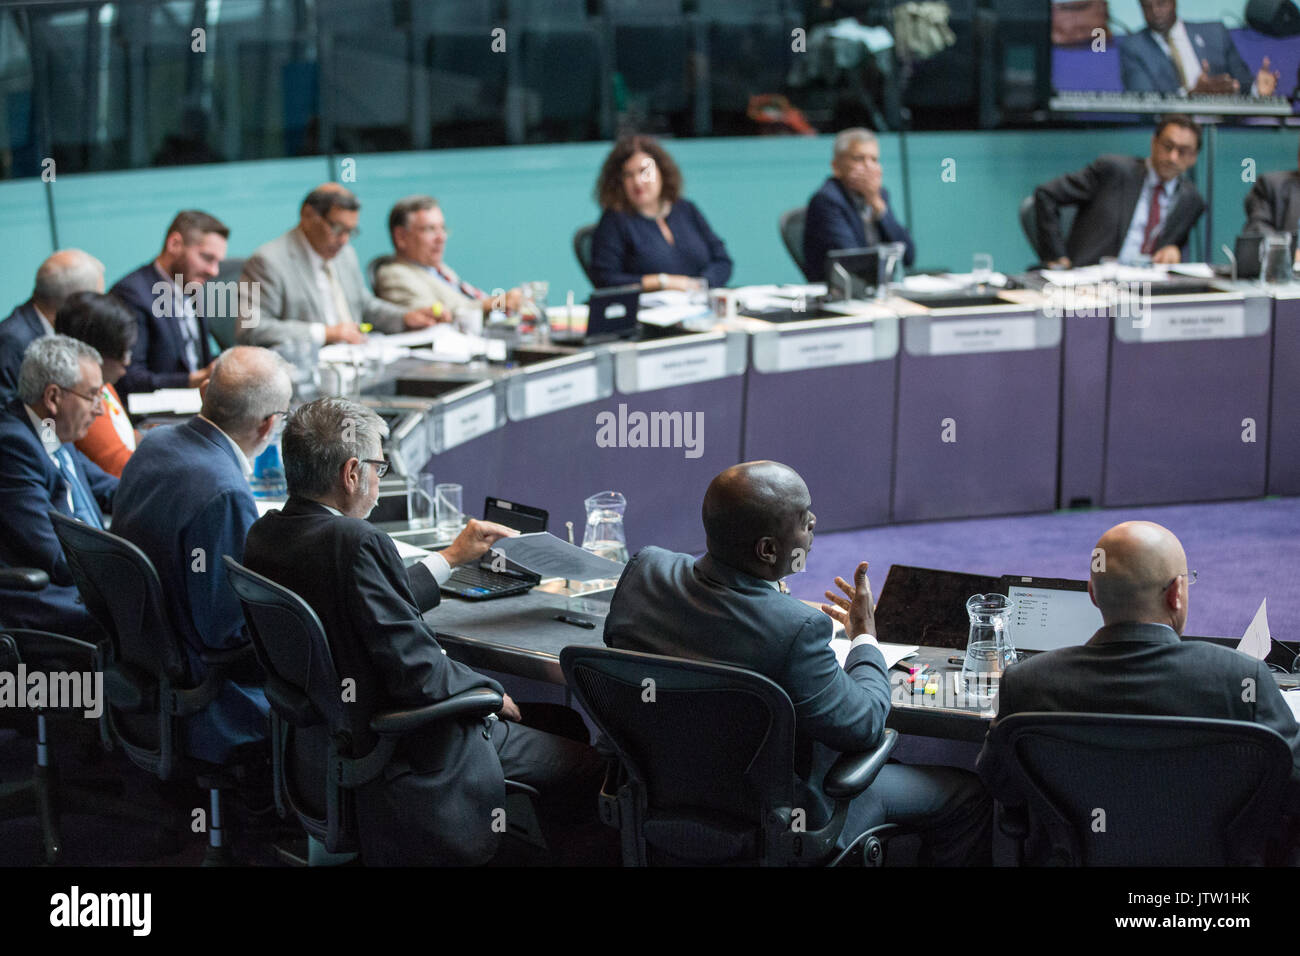 London, UK. 10th August, 2017. London Assembly Members listen to Mayor of London Sadiq Khan responding to questions during Mayor's Question Time at City Hall. Among topics discussed were: acid attacks, social housing, expenditure on fire and police services, 4G coverage on underground trains and noise from overnight underground trains. Credit: Mark Kerrison/Alamy Live News - Stock Image